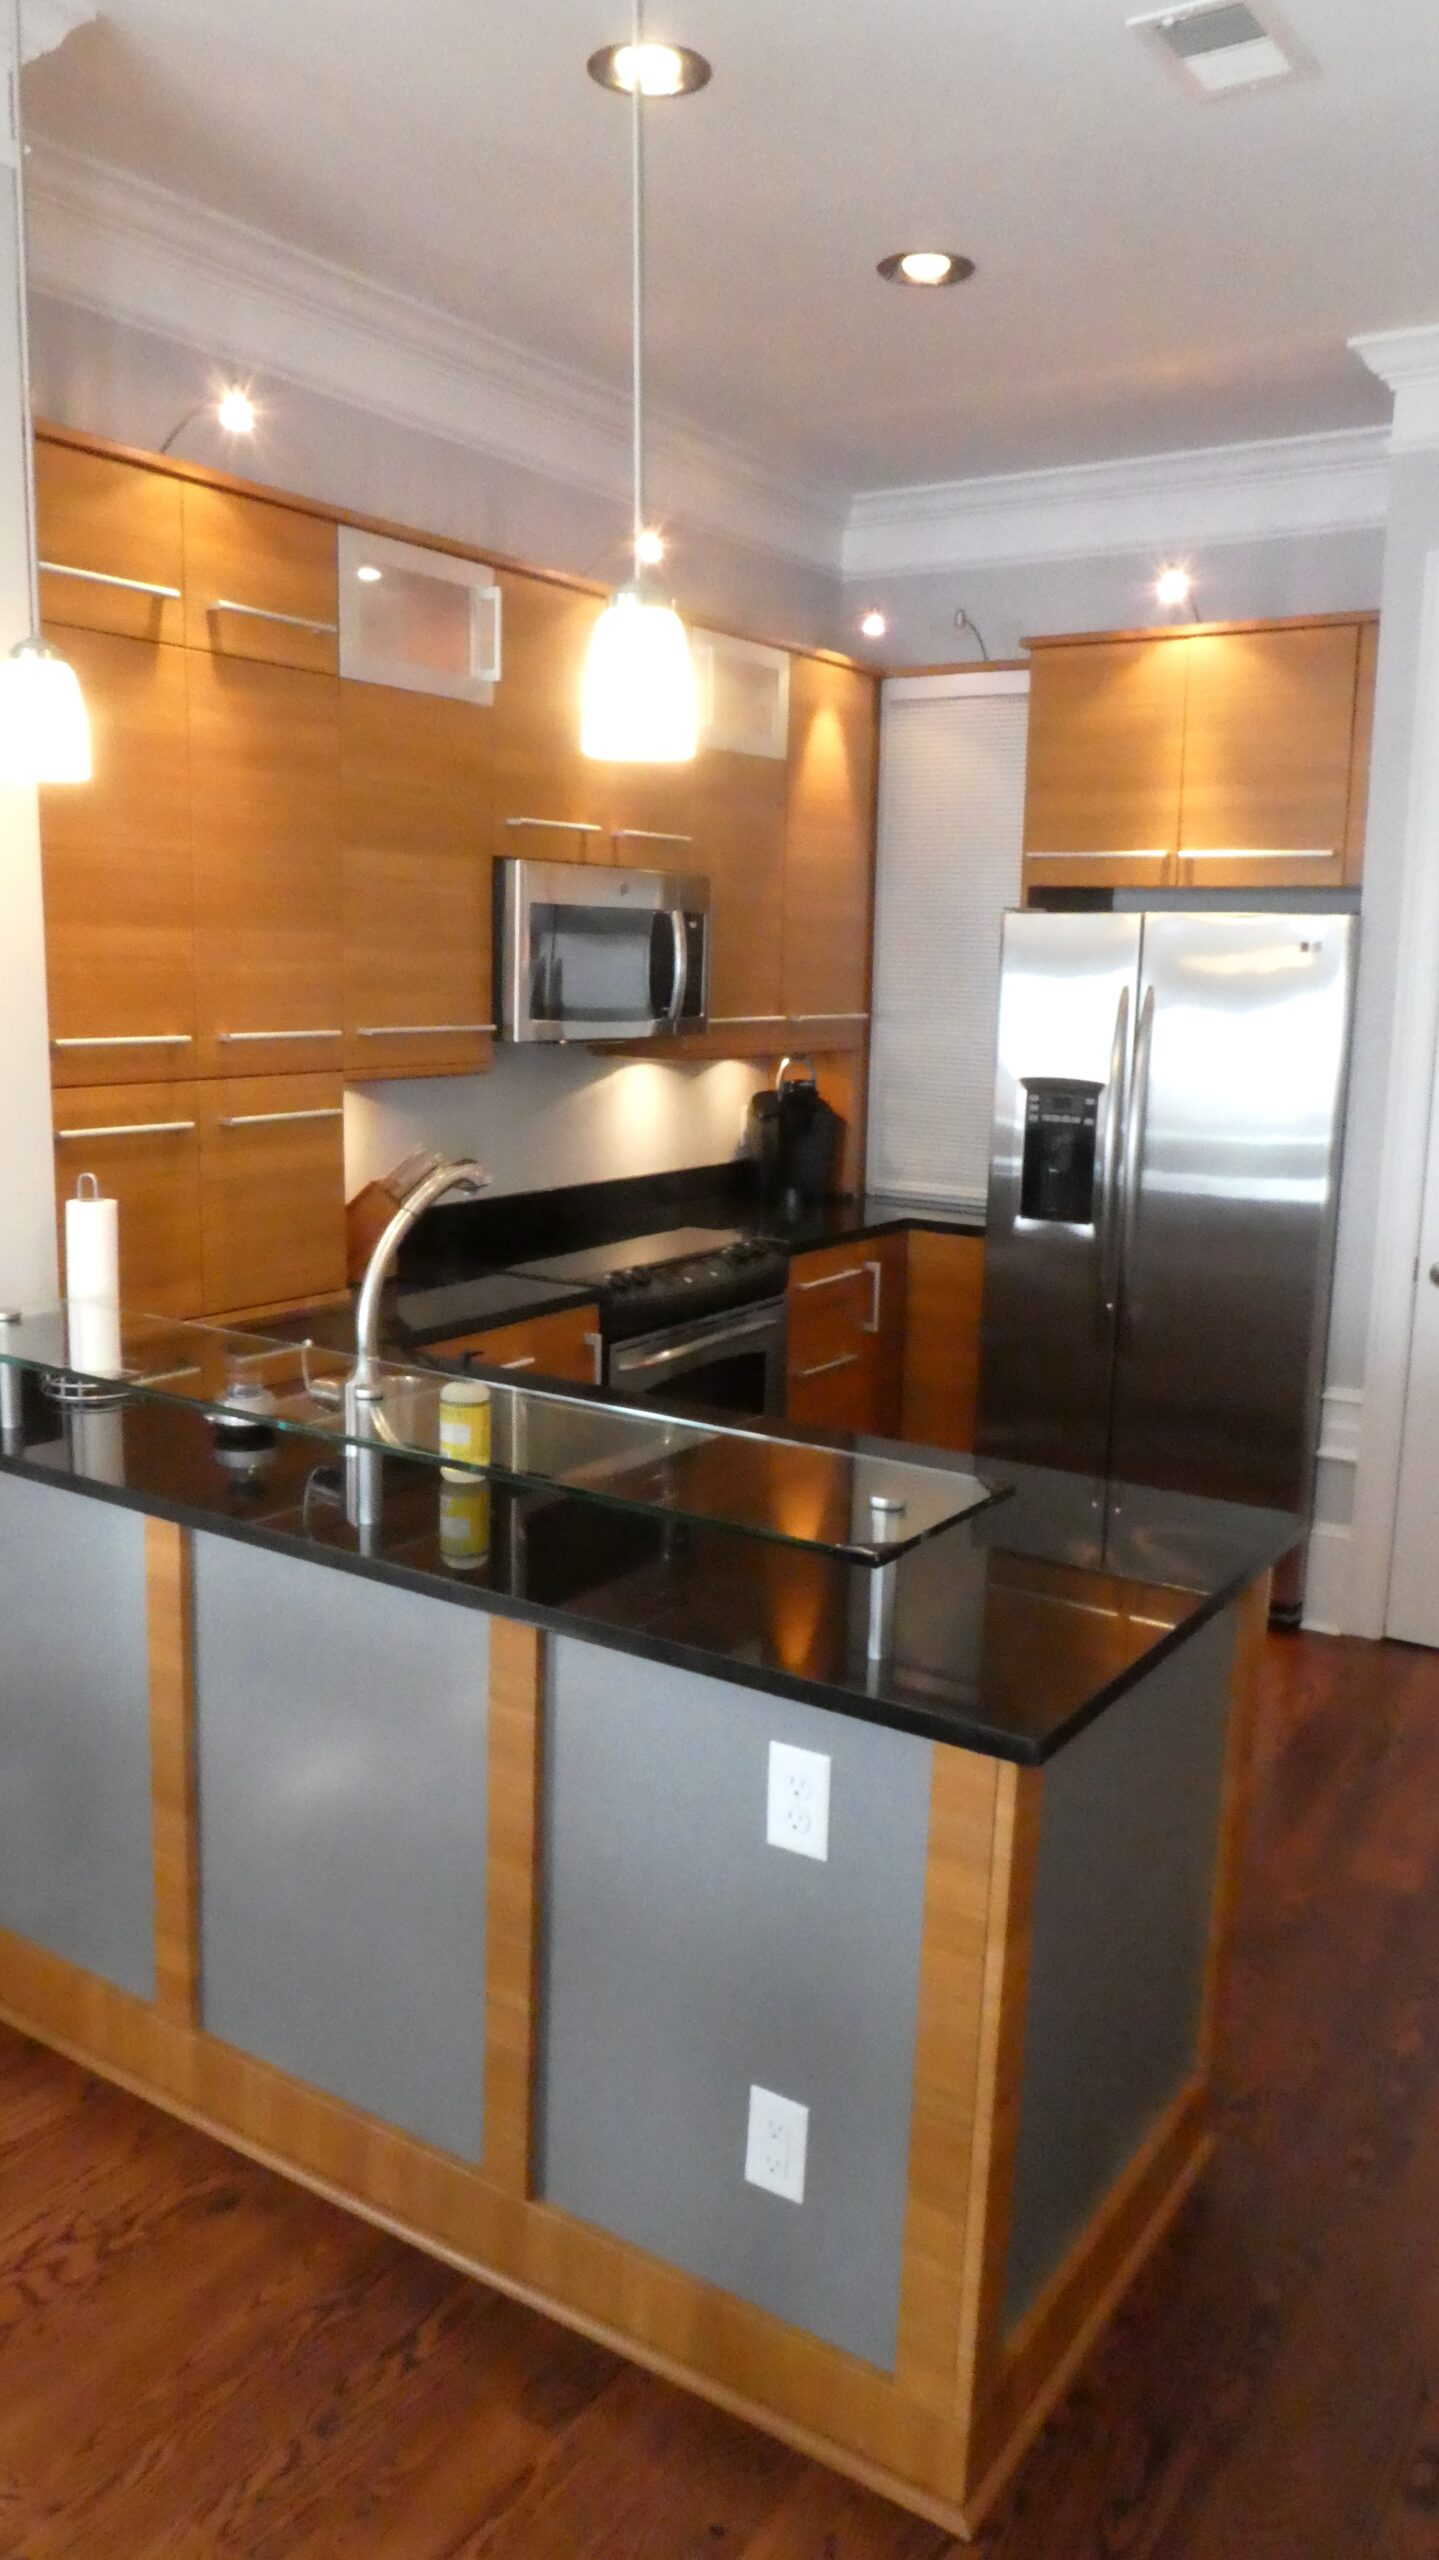 Kitchen to a Grace St Facing unit in the New York Hatters building